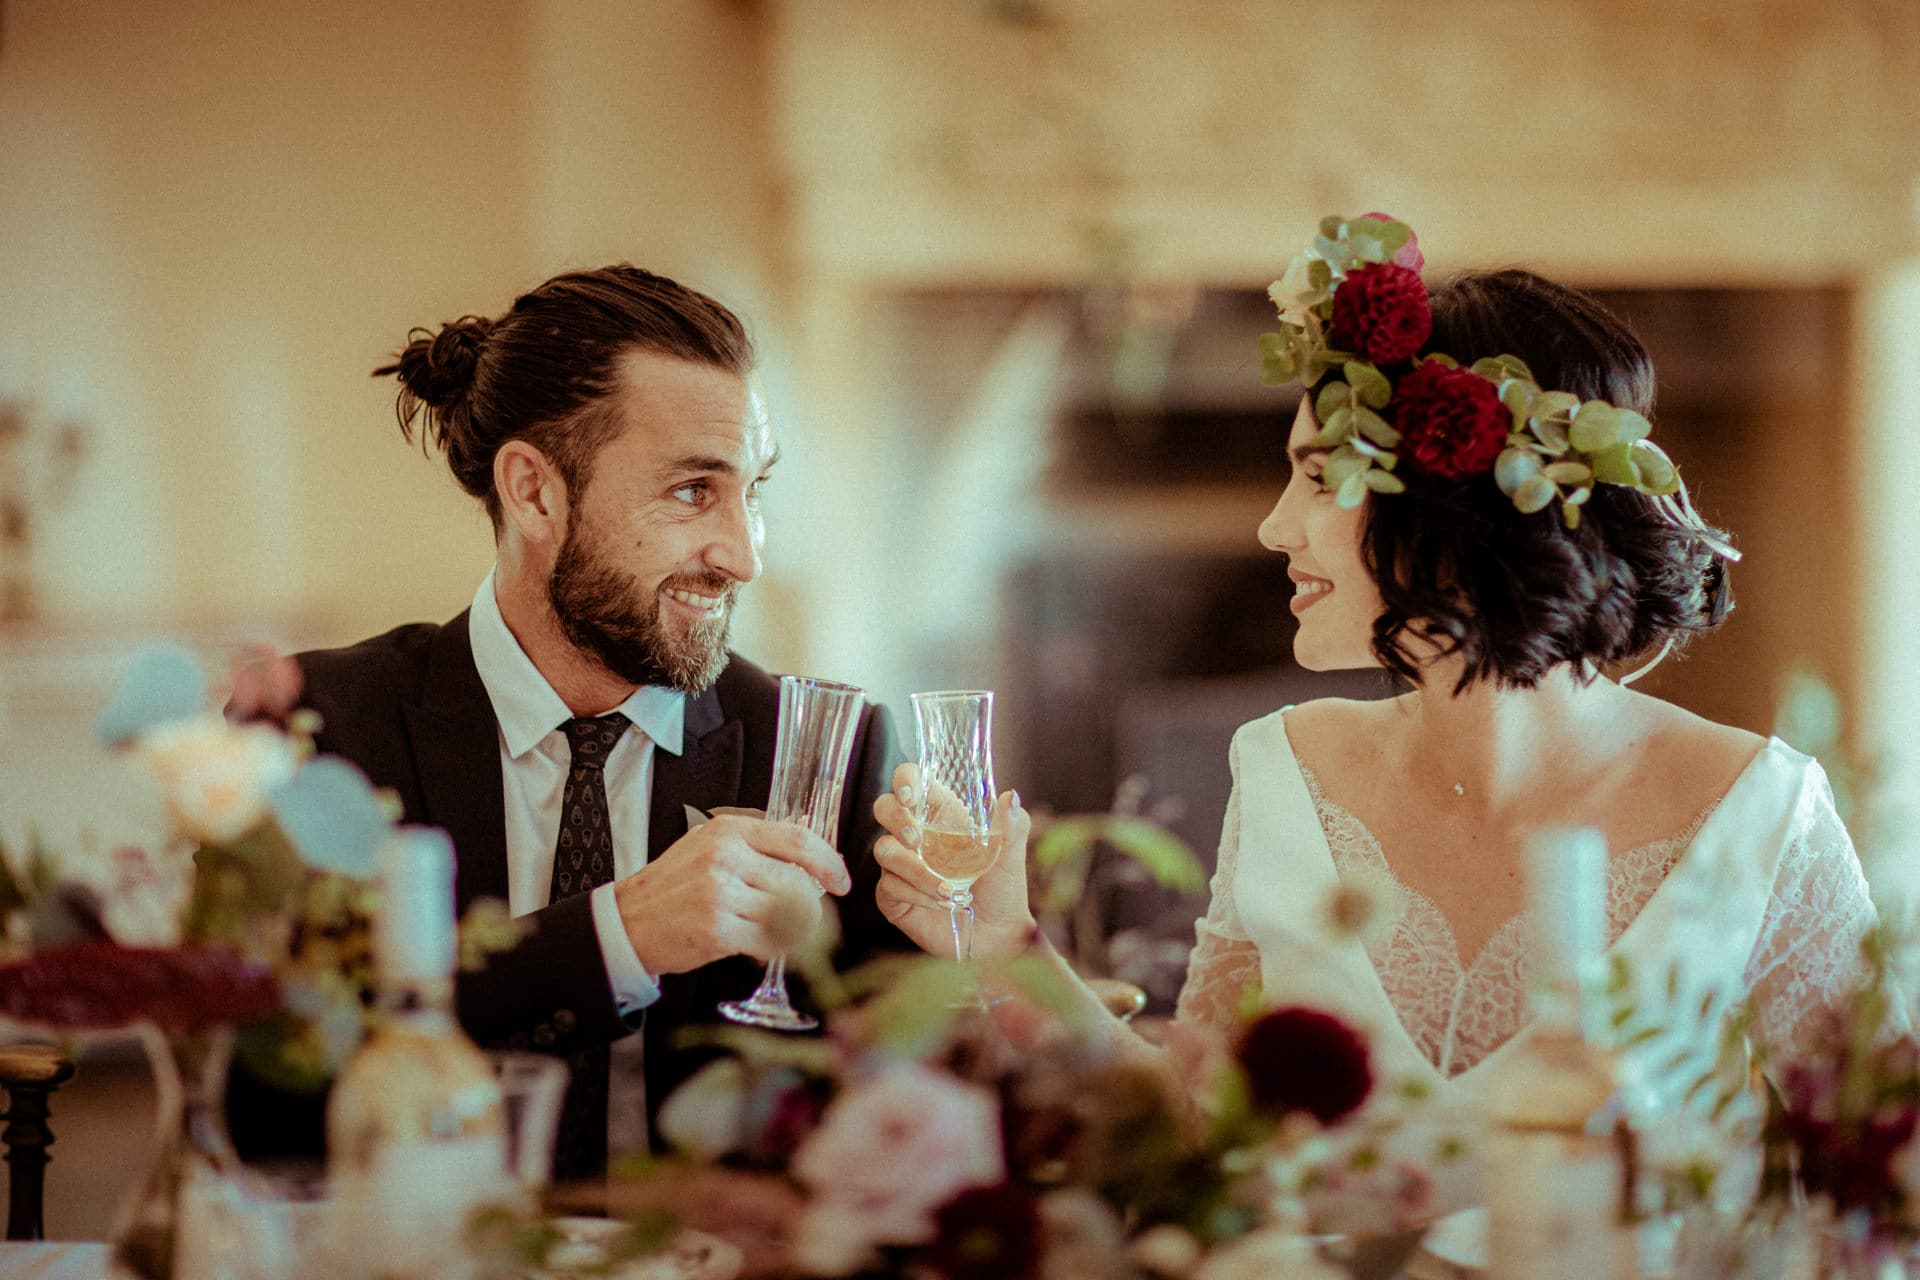 5 tips for awesome wedding photos